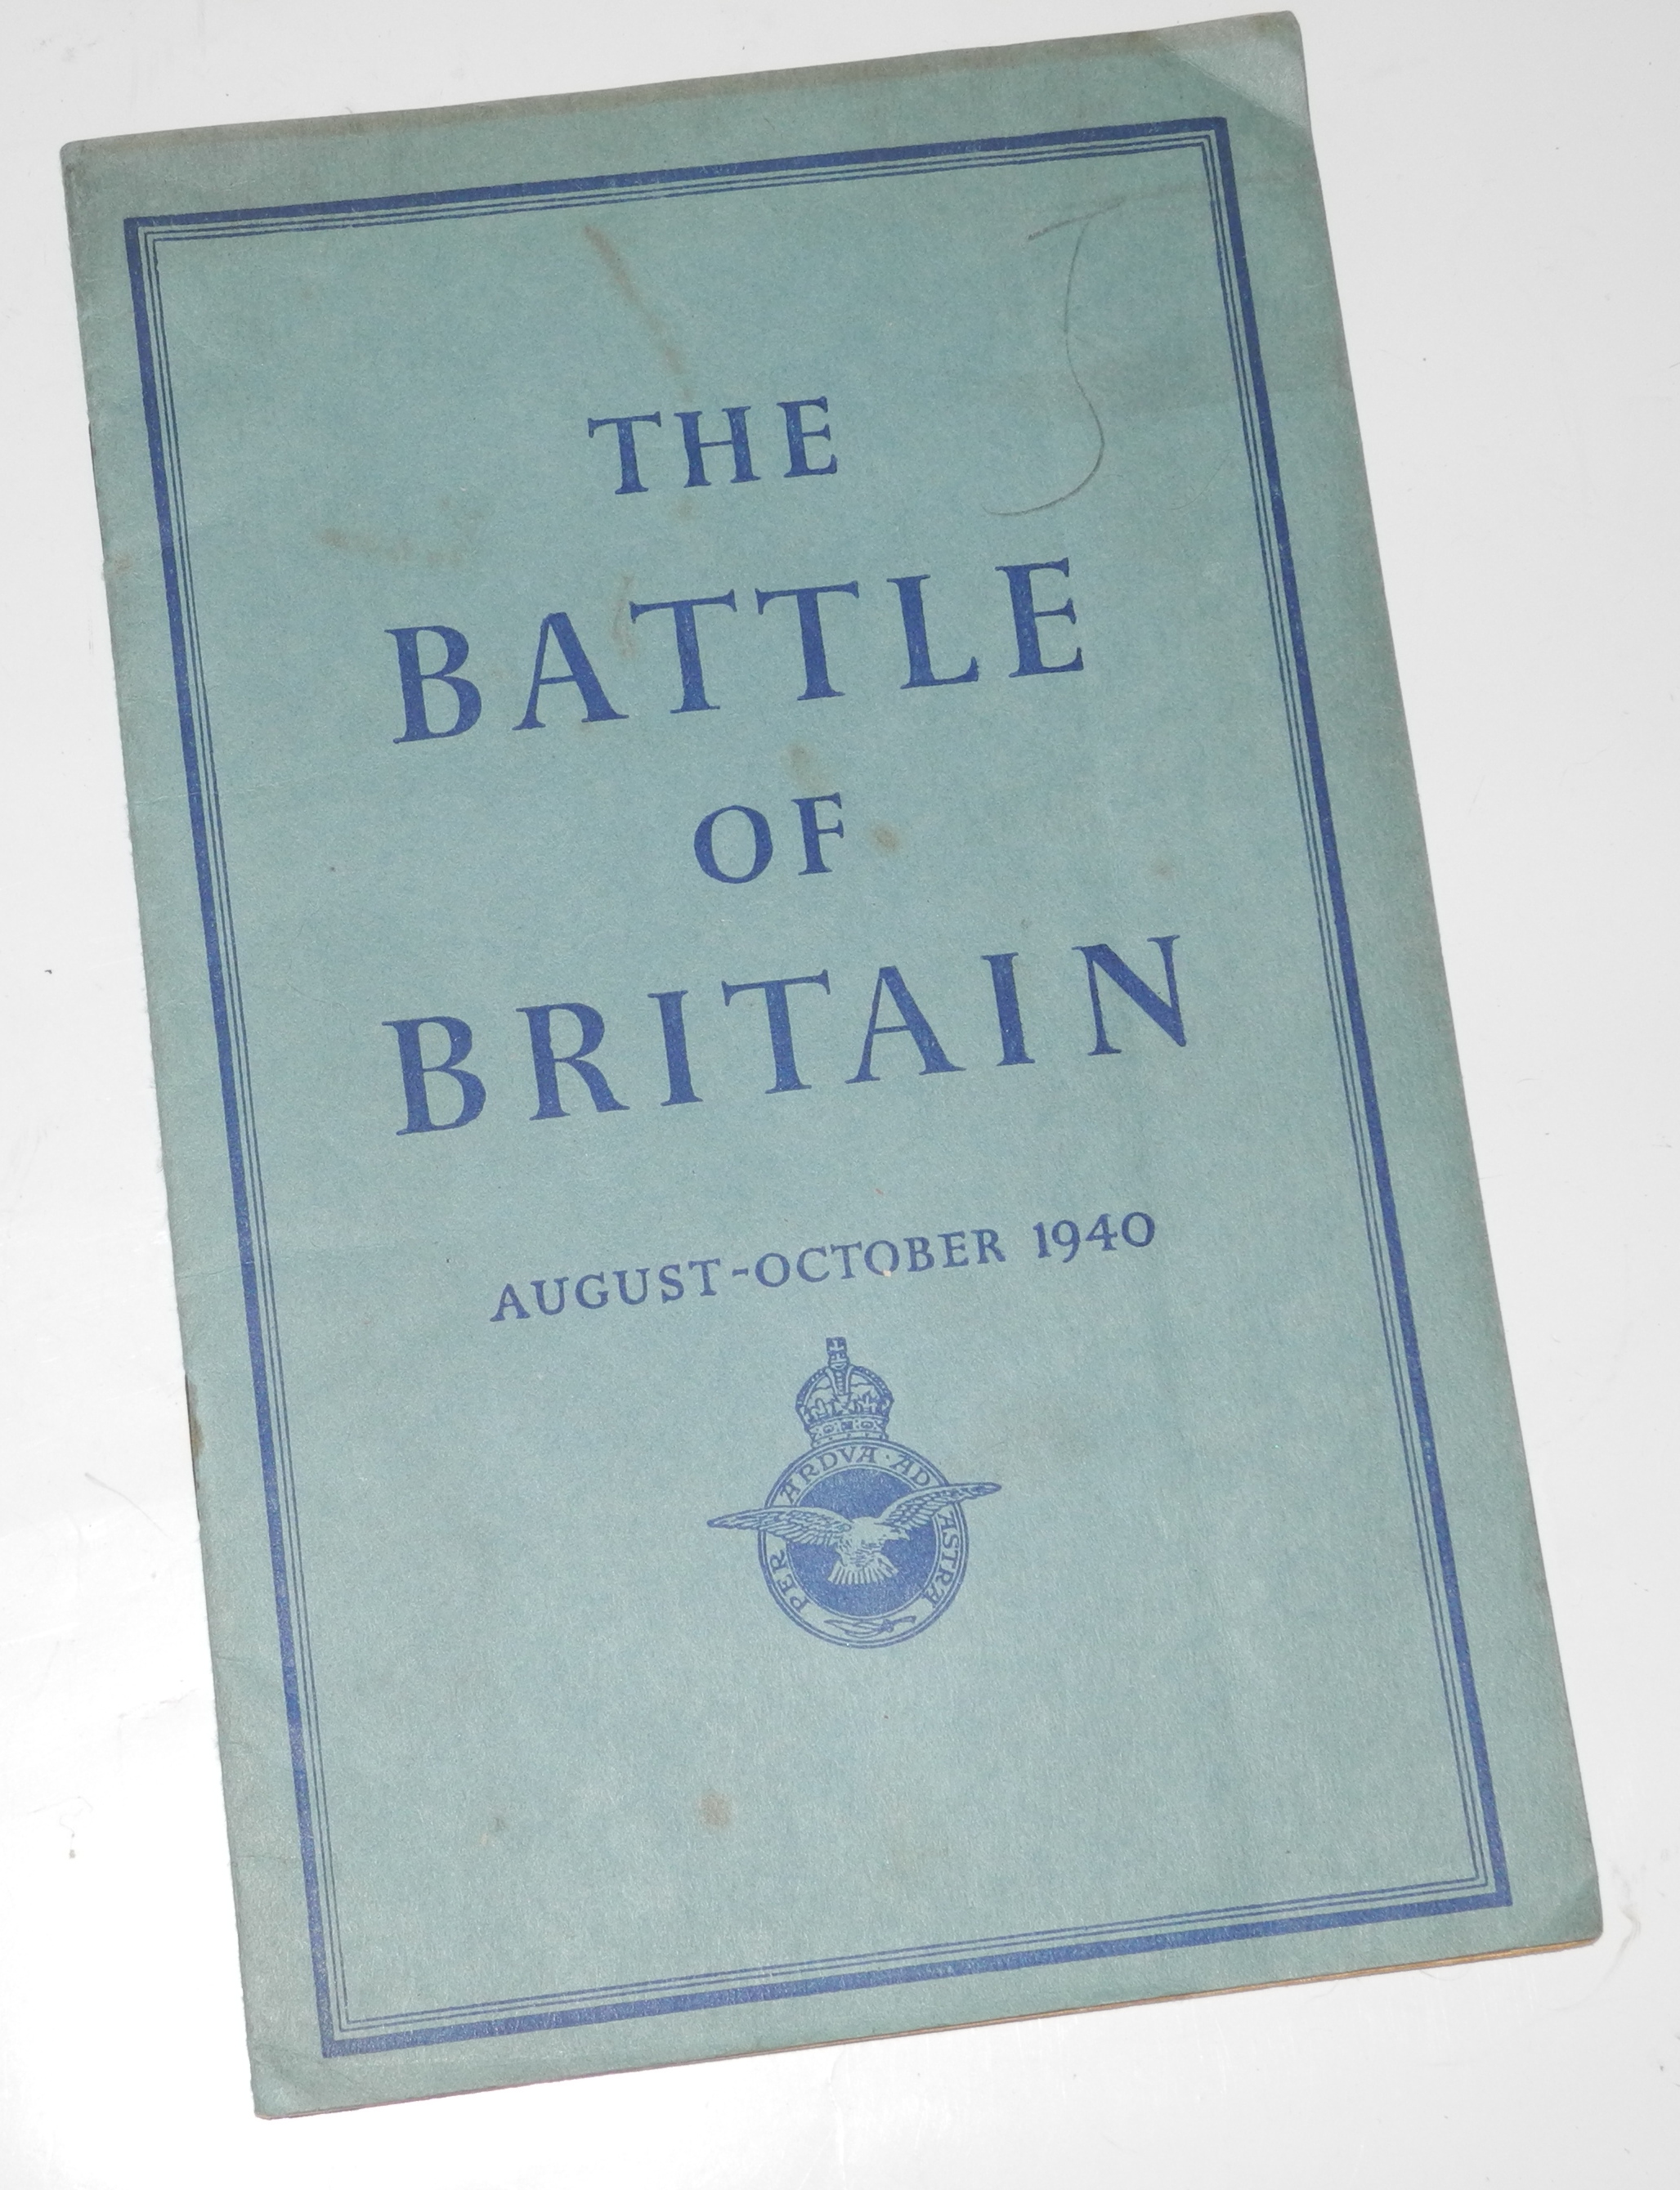 Battle of Britain booklet